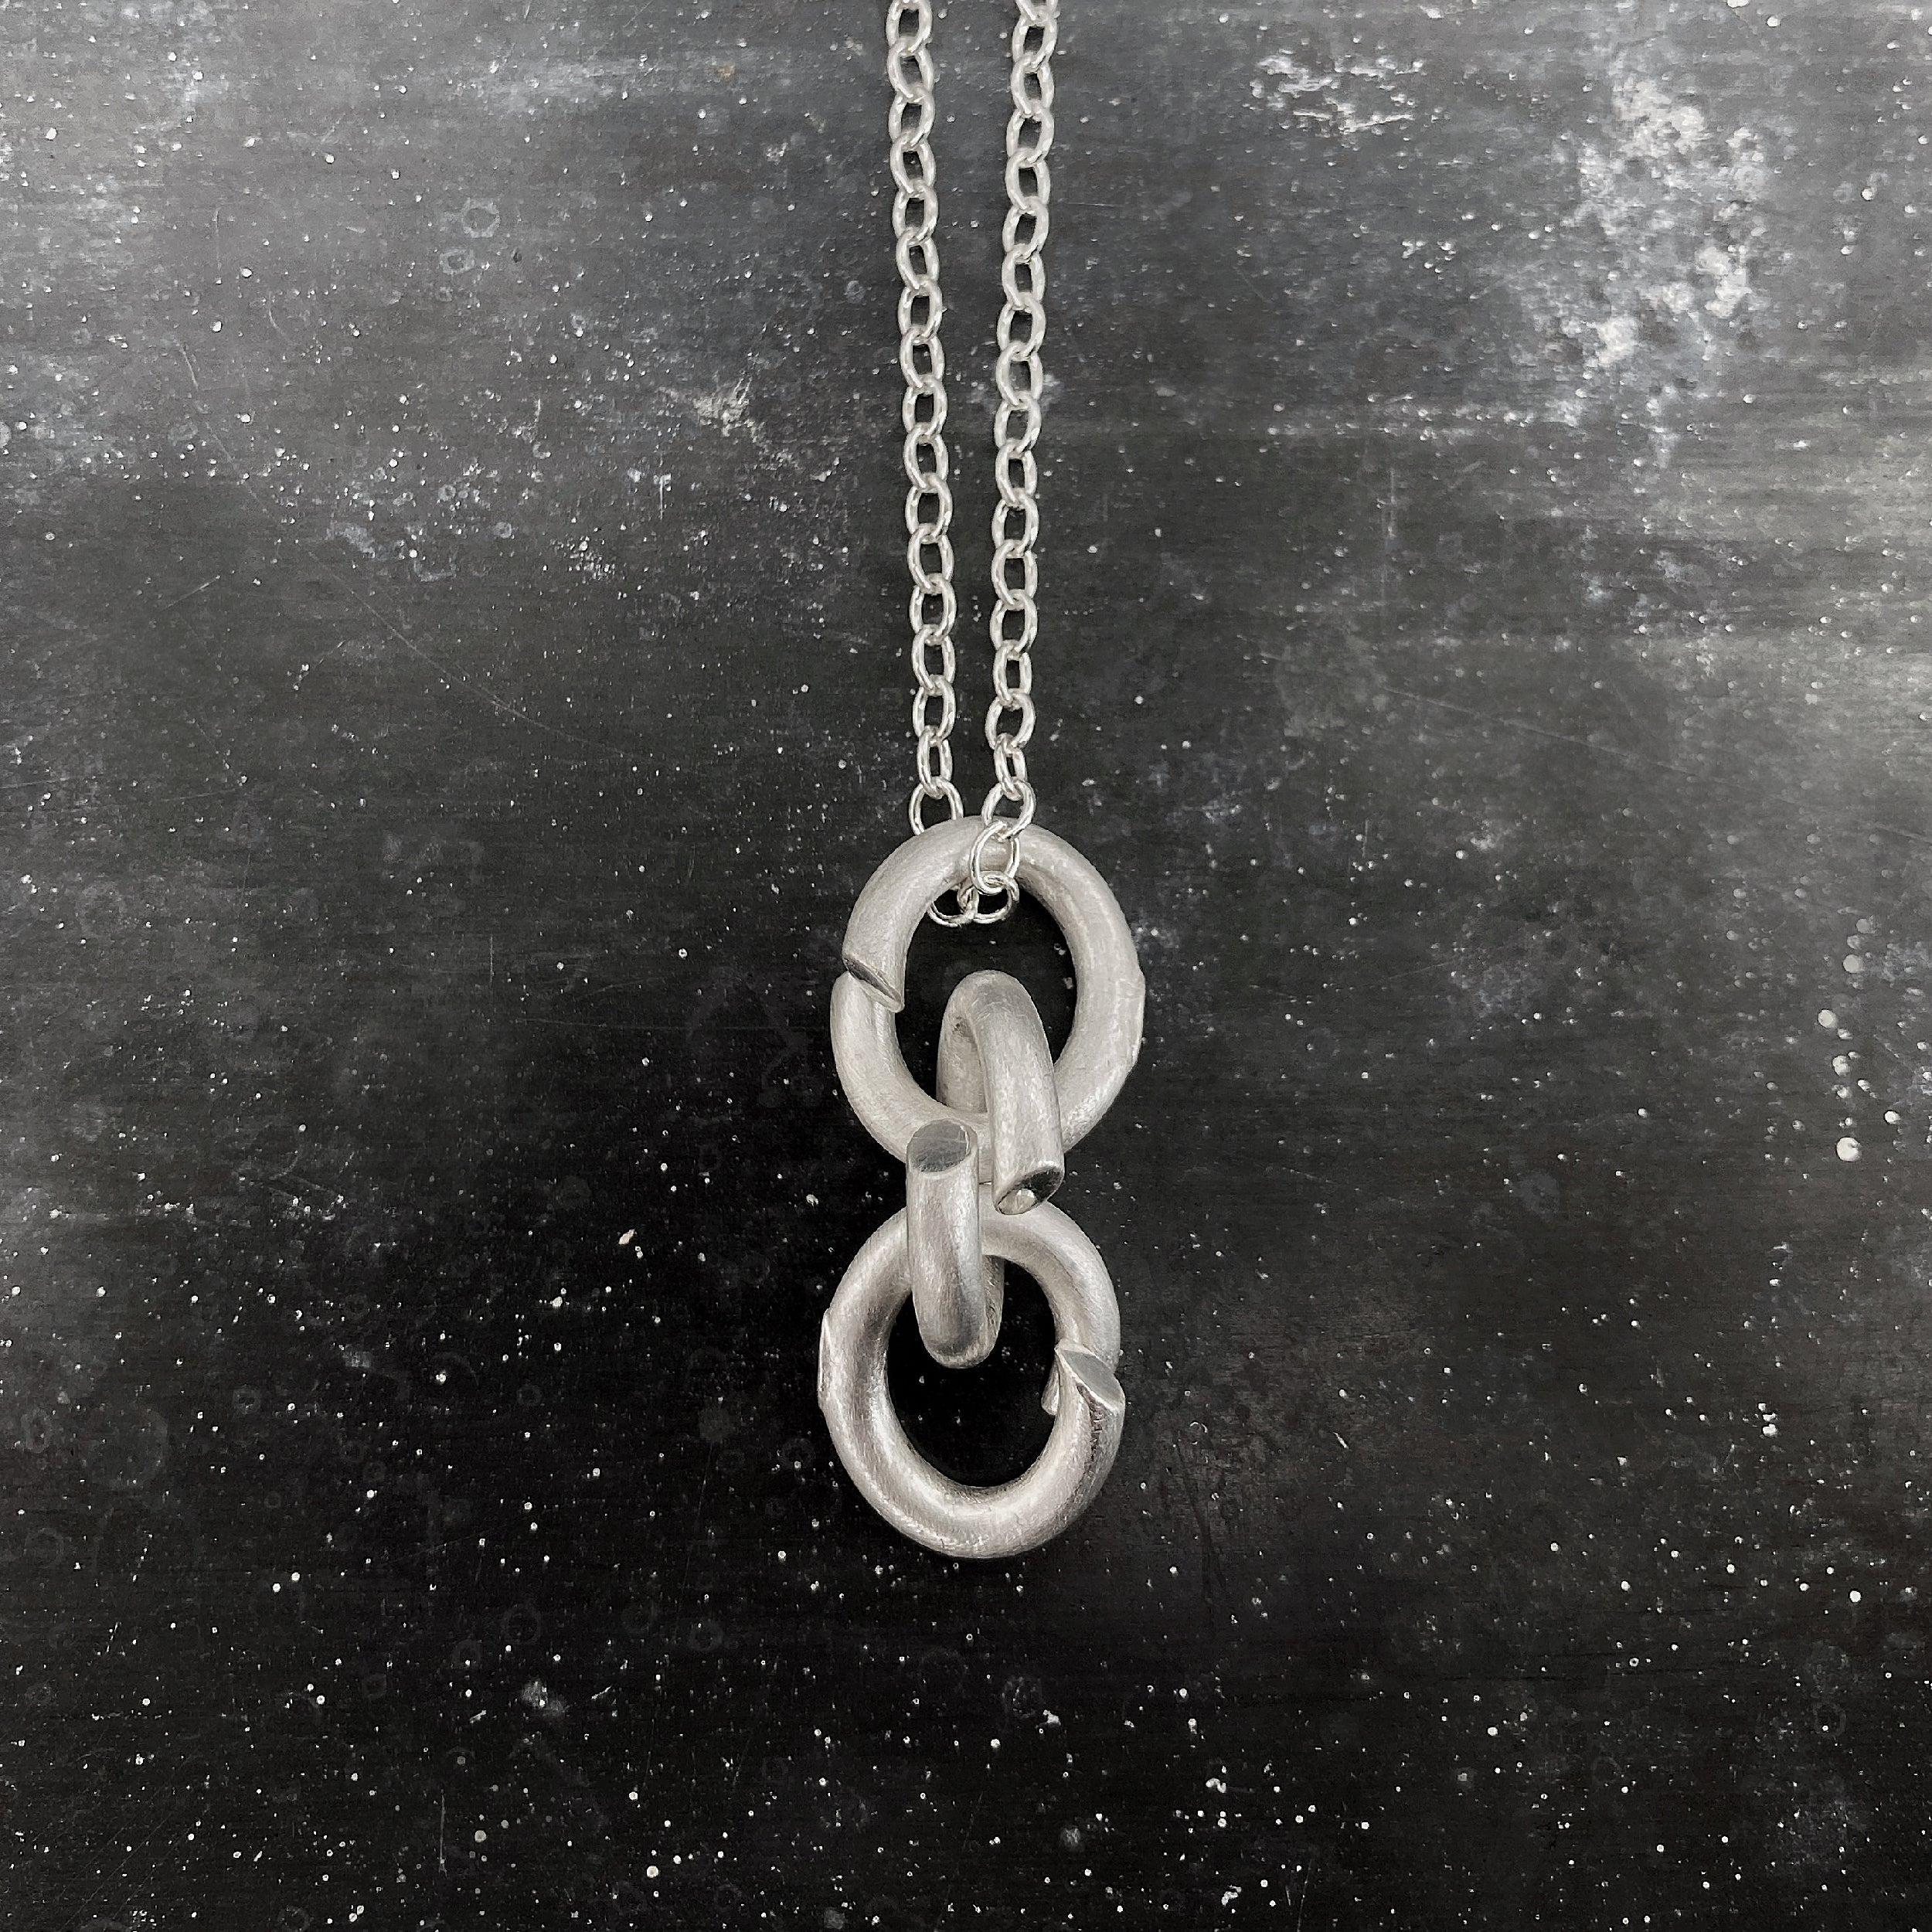 3.B1 necklace - Silver